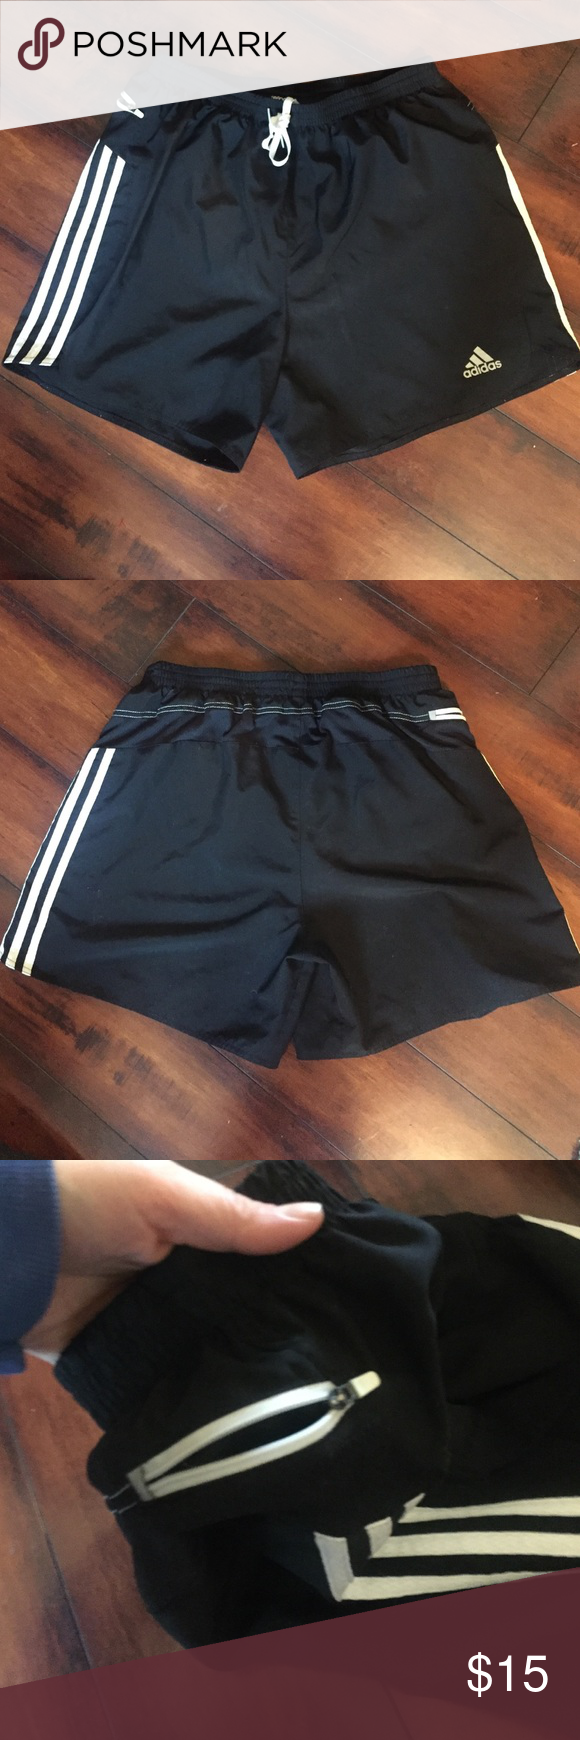 Adidias | Climalite Shorts Black drawstring 'response' shorts with side zipper, with mesh inner brief. 100% polyester. Gently used, good condition. Adidas Shorts